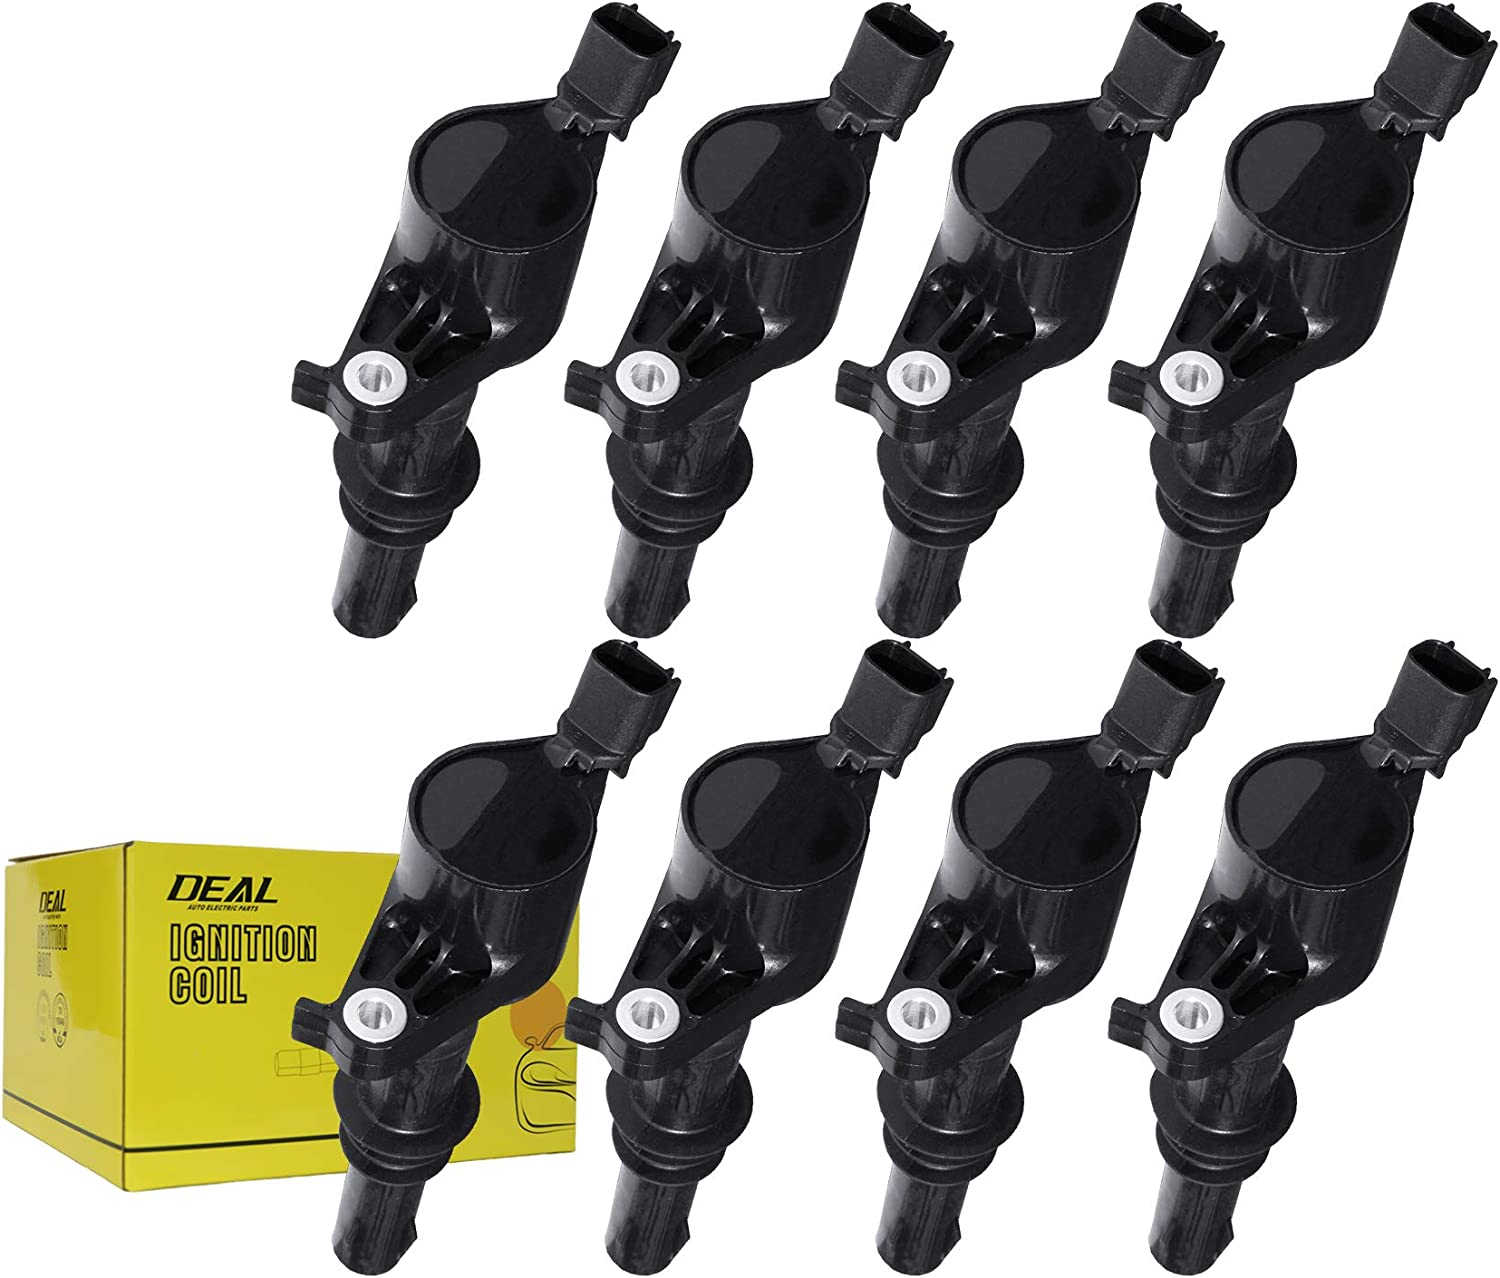 Lincoln Mark LT Navigator Mercury Mountaineer 4.6L 5.4L V8 Replacement# DG-511 FD508 C1659 C1541 DEAL Pack of 8 New Ignition Coils For Ford Mustang Explorer Sport Trac Expedition F-150 F-250 F-350